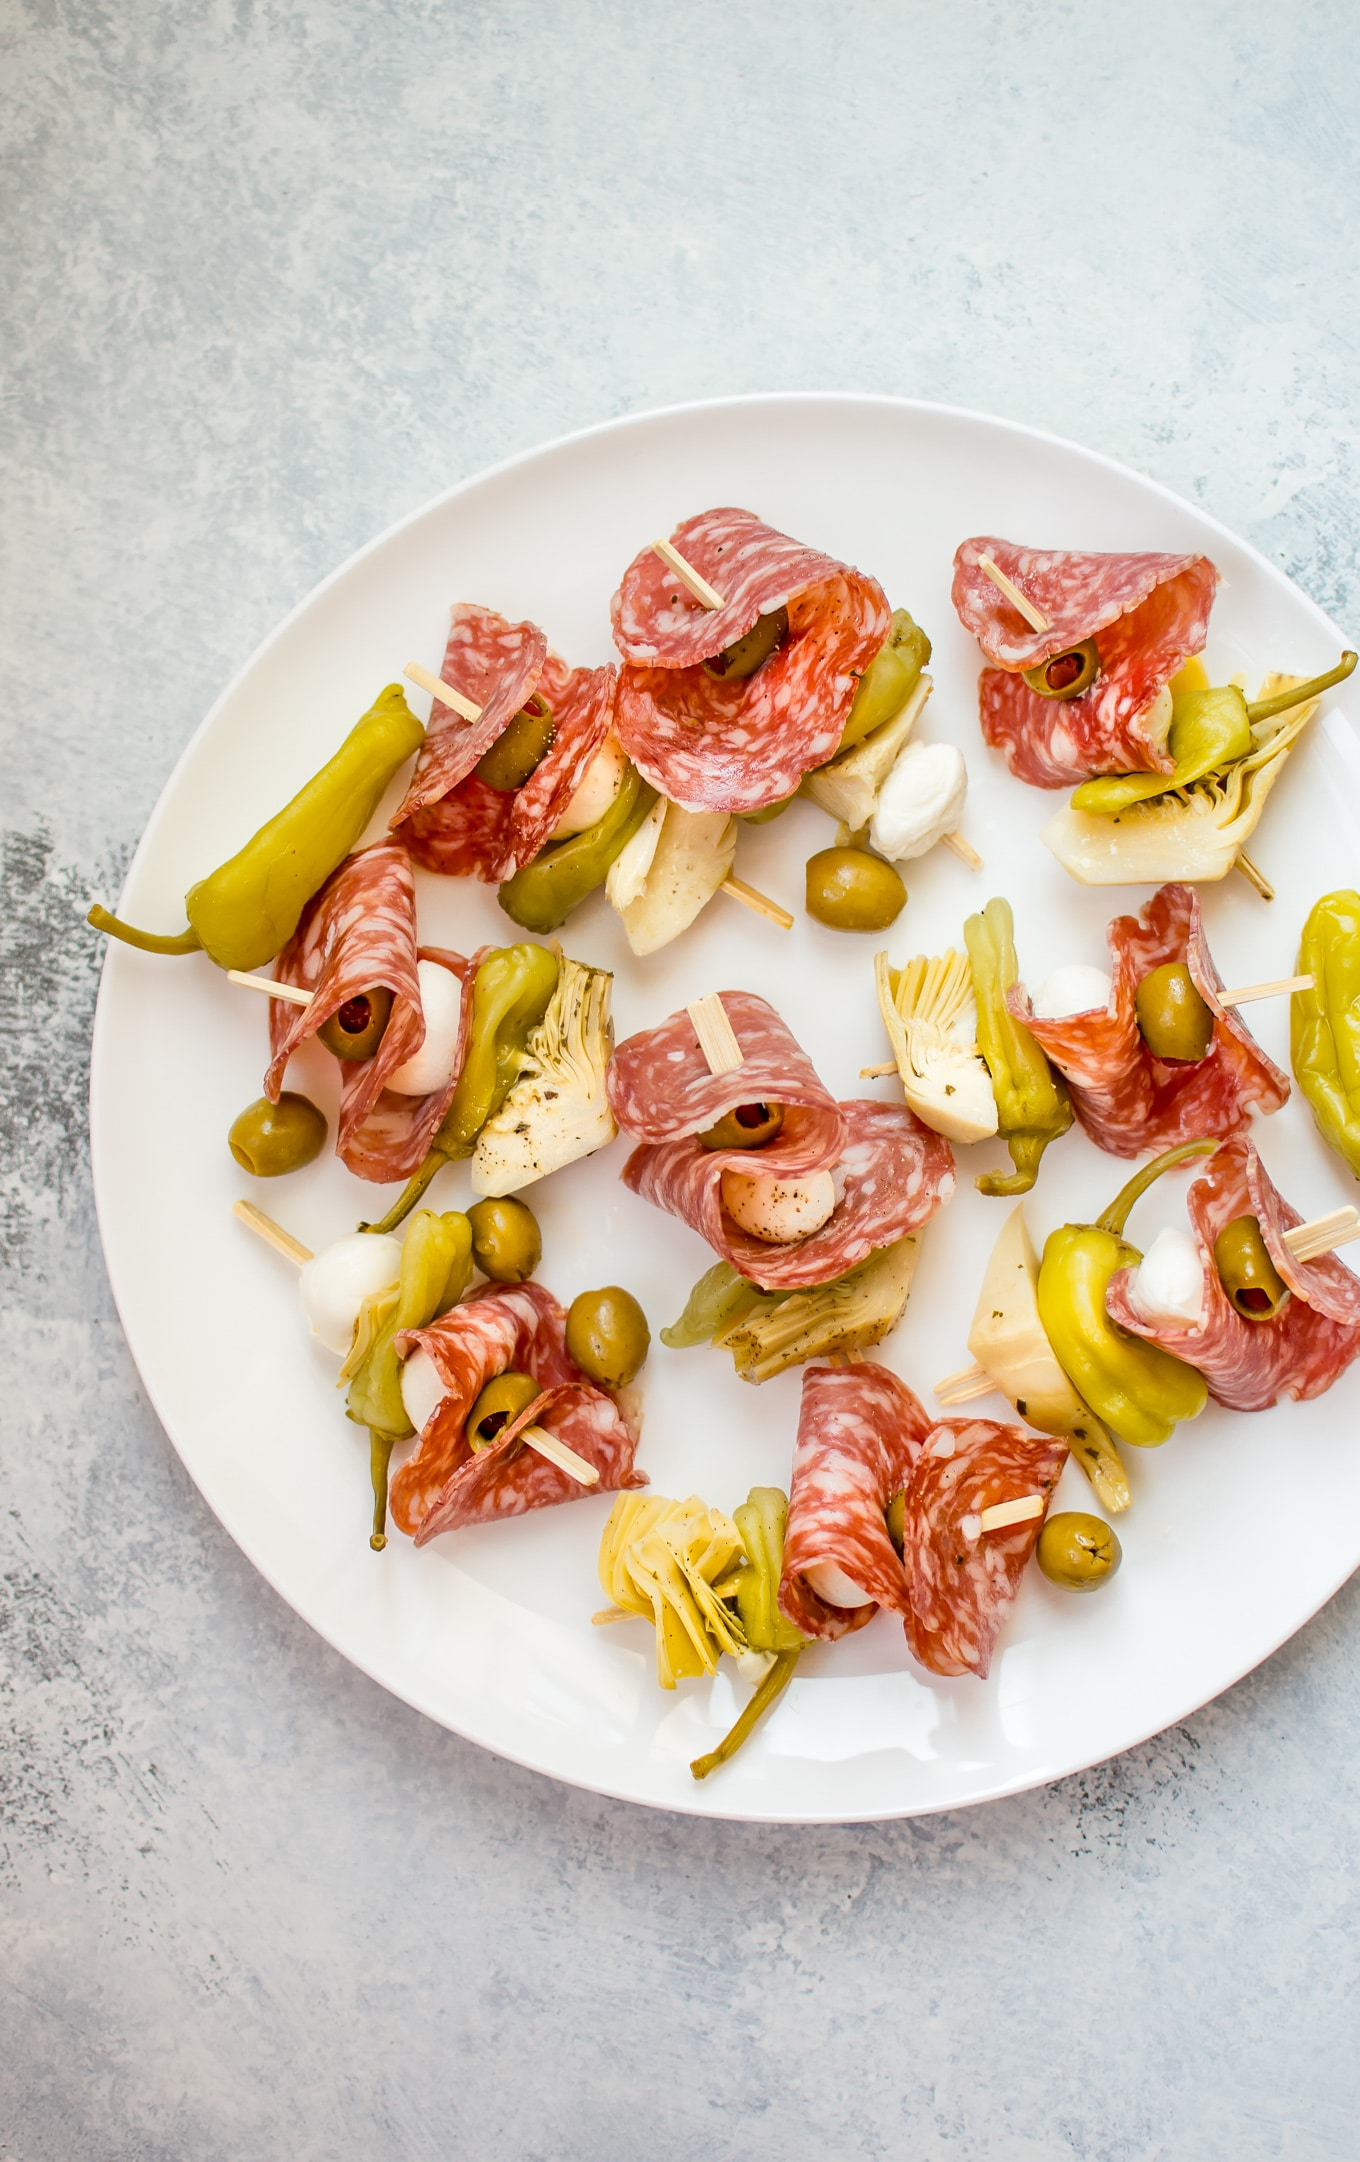 These easy antipasto skewers are fresh, colorful, delicious, and come together fast. They're also simple to store and transport without much fuss.